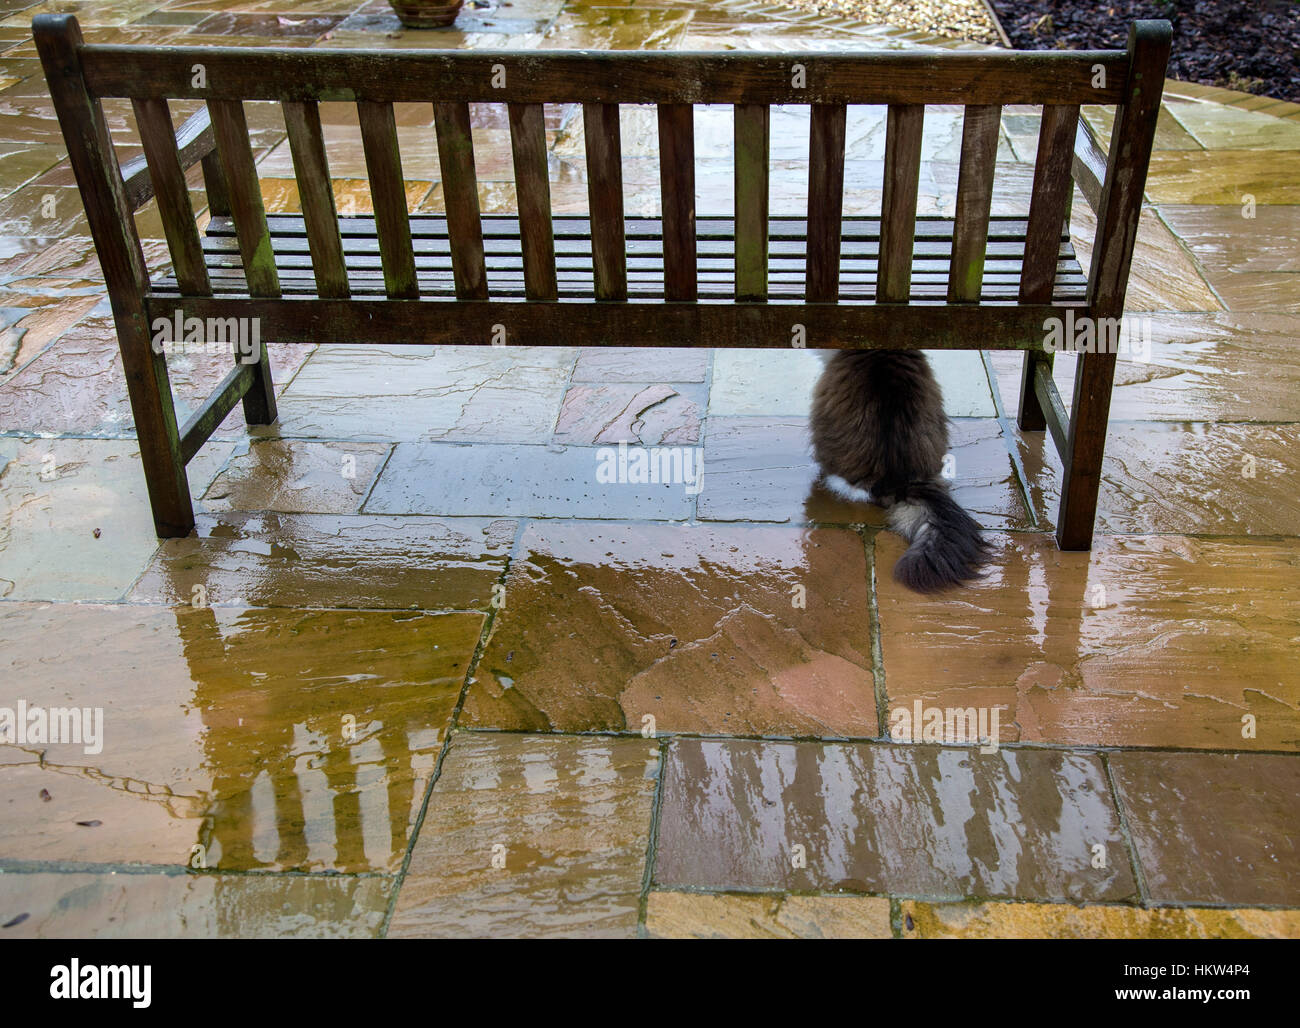 Sidmouth, Devon. 30th Jan 2017. Rain, rain, go away. A cat shelters from the pouring rain under a garden bench in Stock Photo